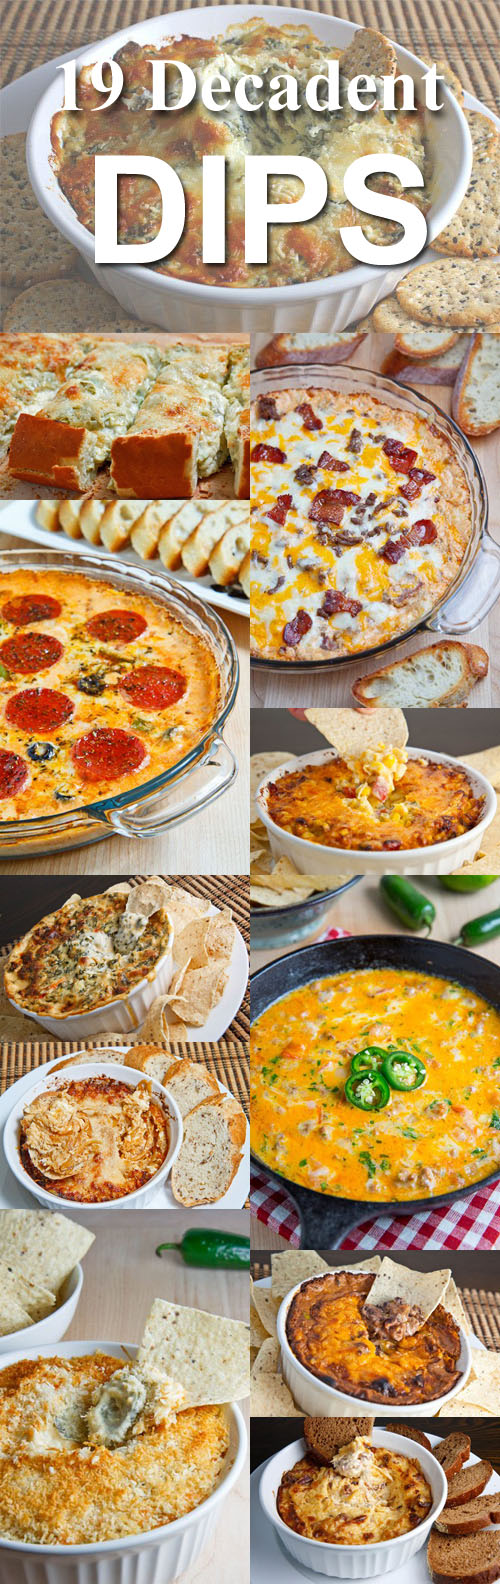 19 Decadent Dips